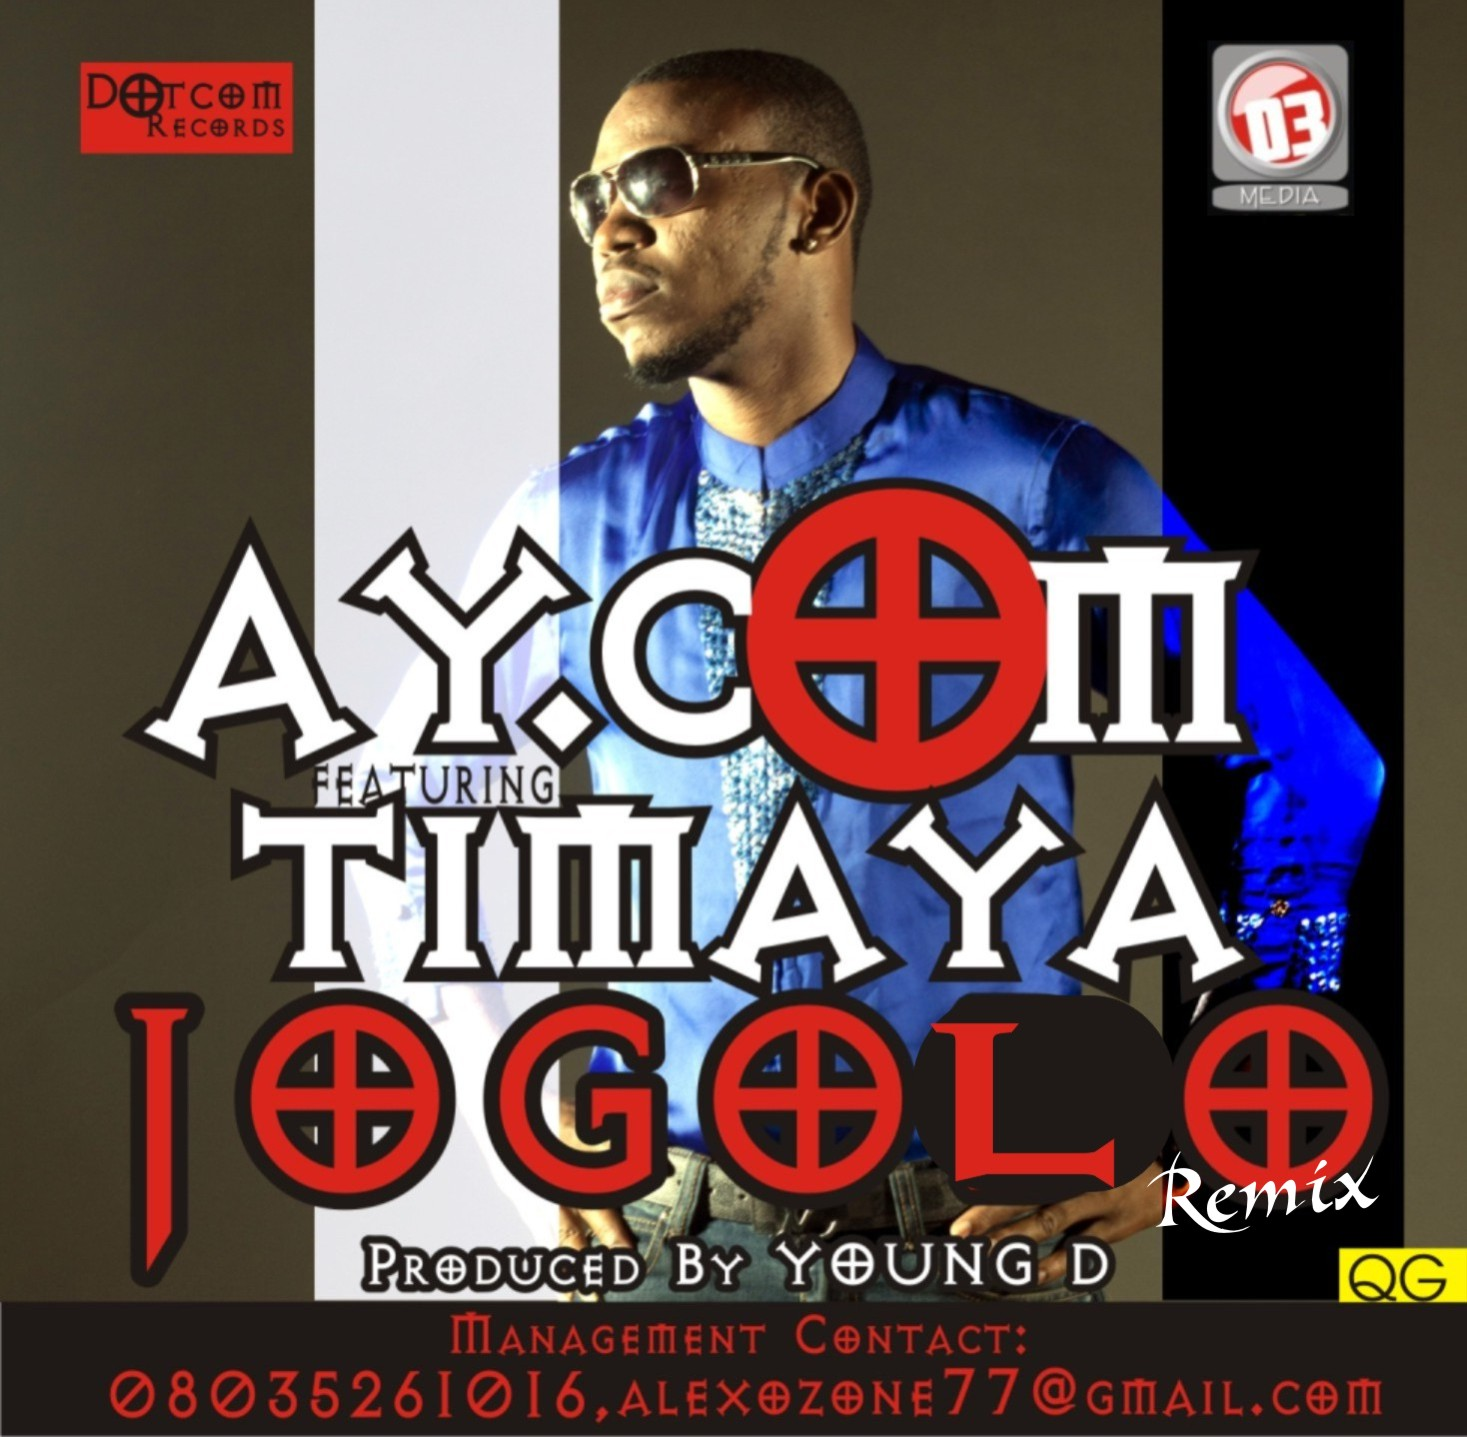 AY.com ft. Timaya - JOGOLO Remix [prod. by Young D] Artwork | AceWorldTeam.com